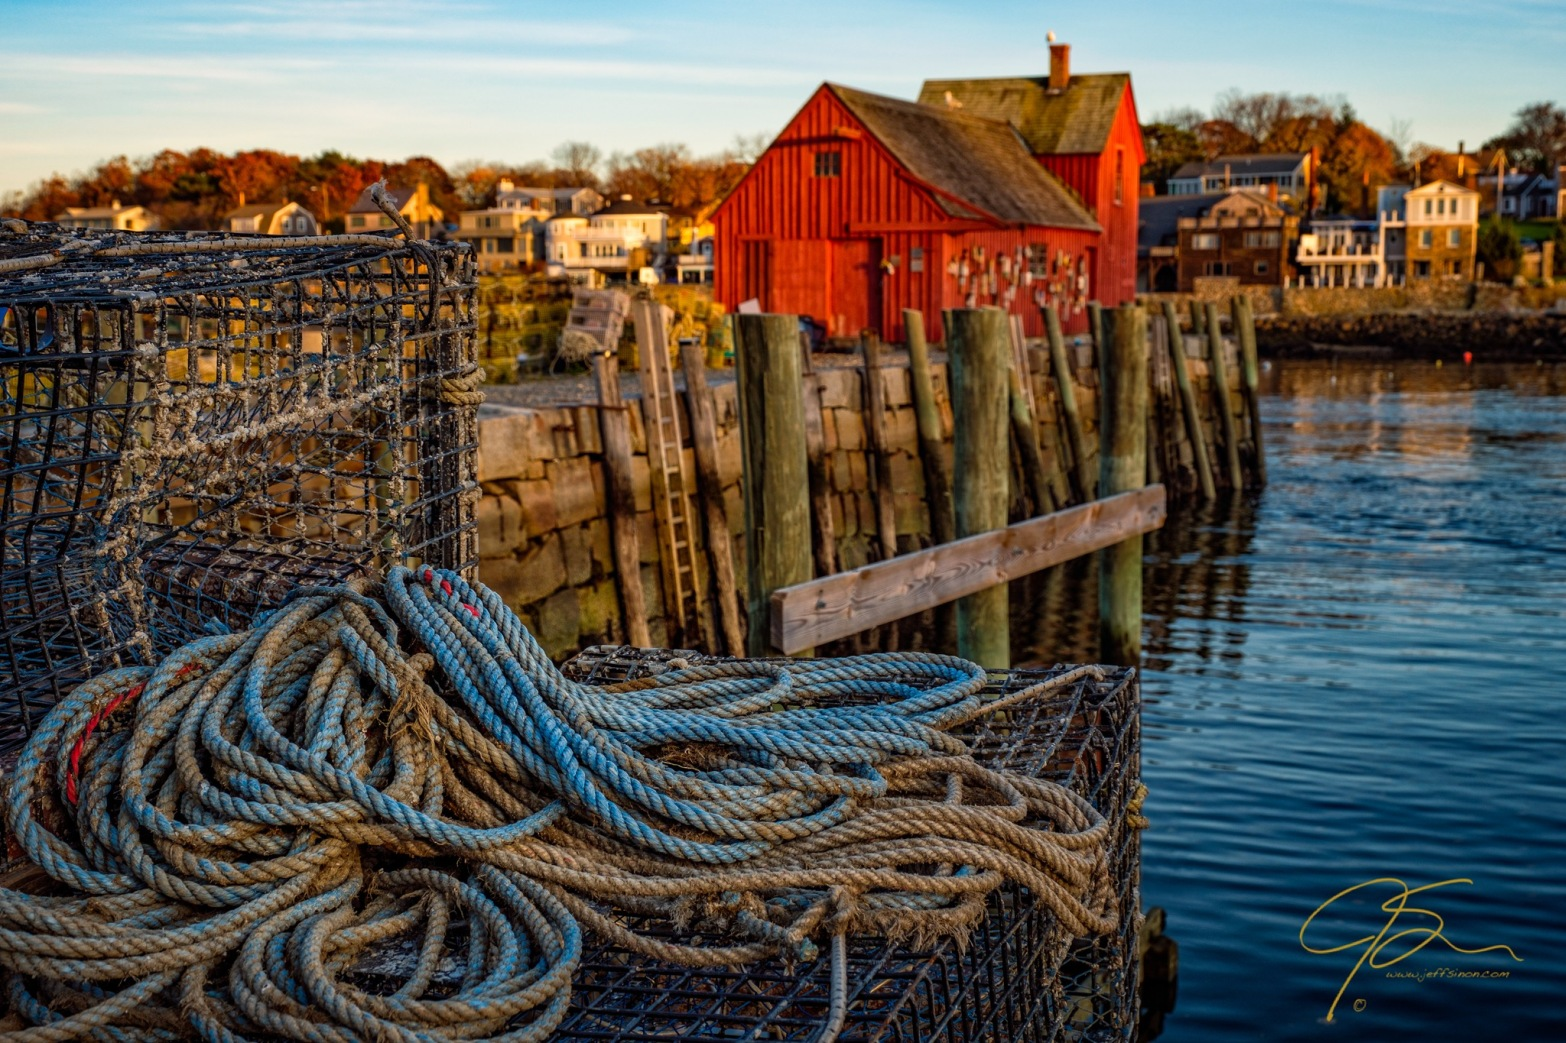 Lobster Traps and Line at Motif #1